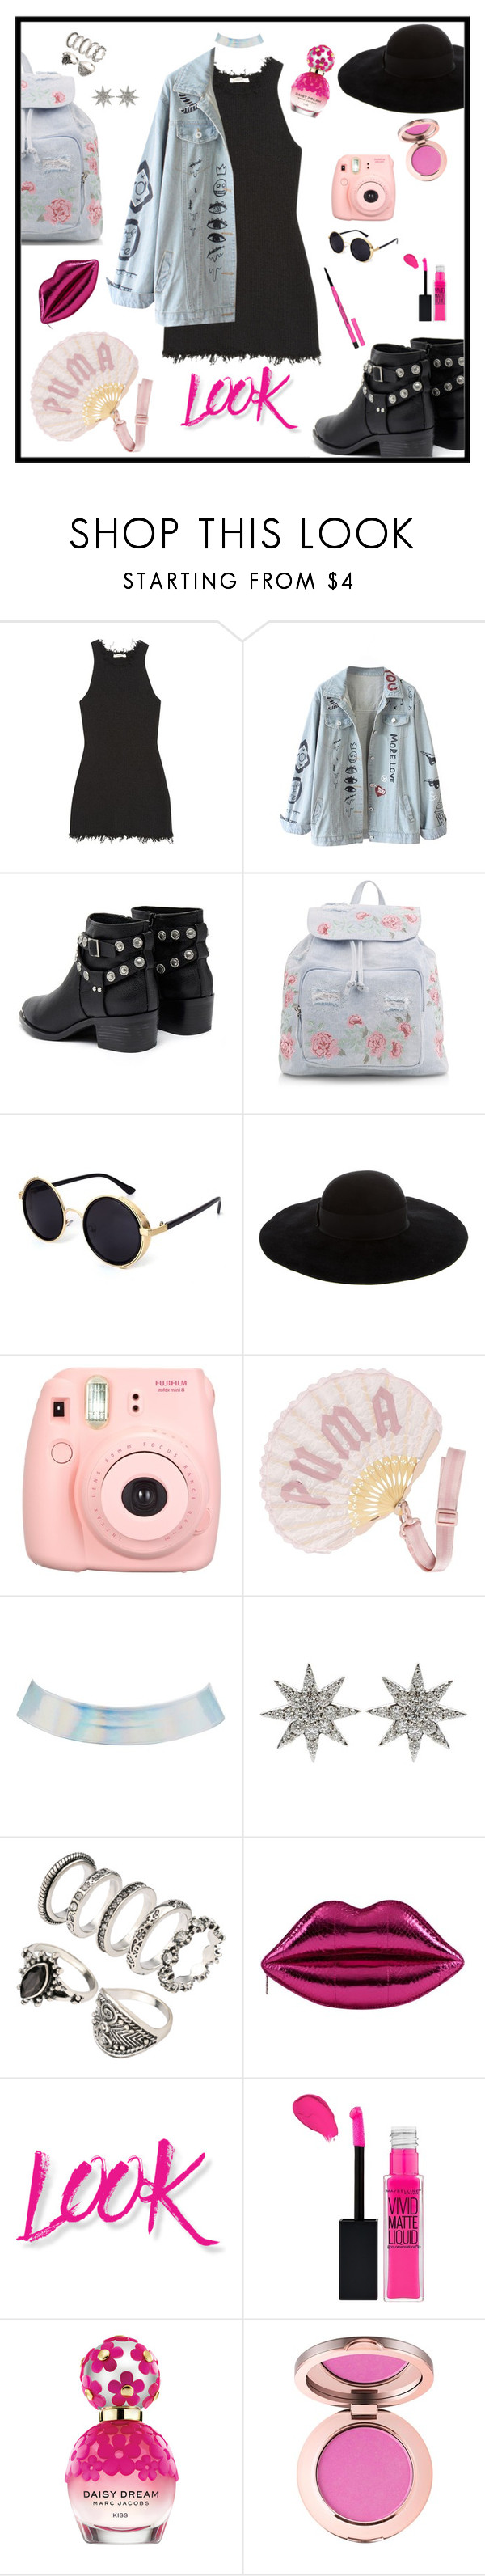 """""""GET THE LOOK 👌🏻"""" by ihottestpm ❤ liked on Polyvore featuring CÉLINE, Senso, New Look, Eugenia Kim, Fujifilm, Puma, Charlotte Russe, Bee Goddess, NYX and Marc Jacobs"""